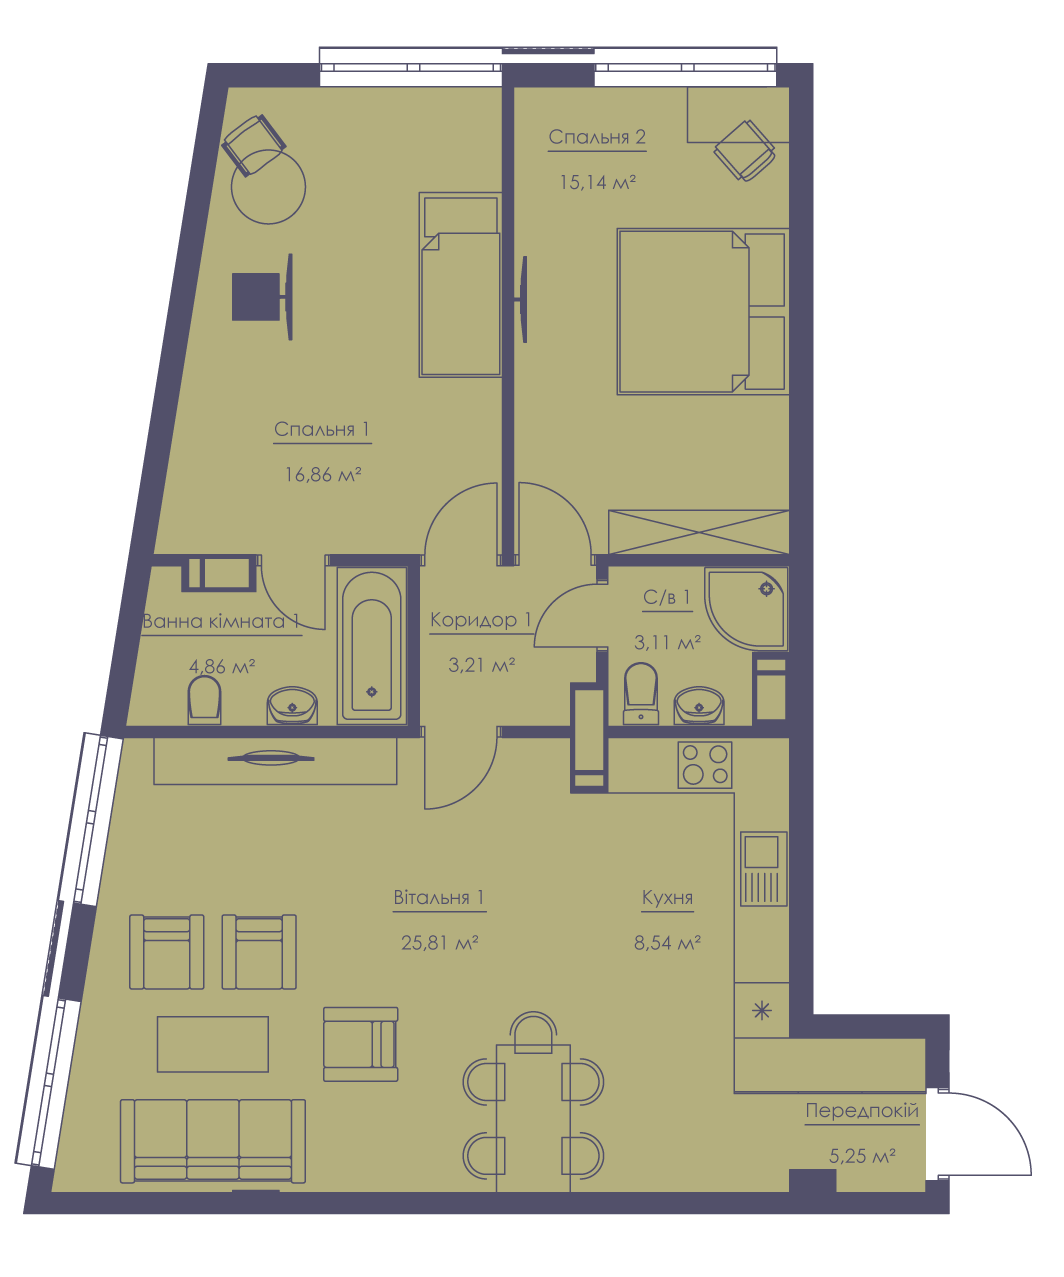 Apartment layout KV_63_3n_1_1_7-1